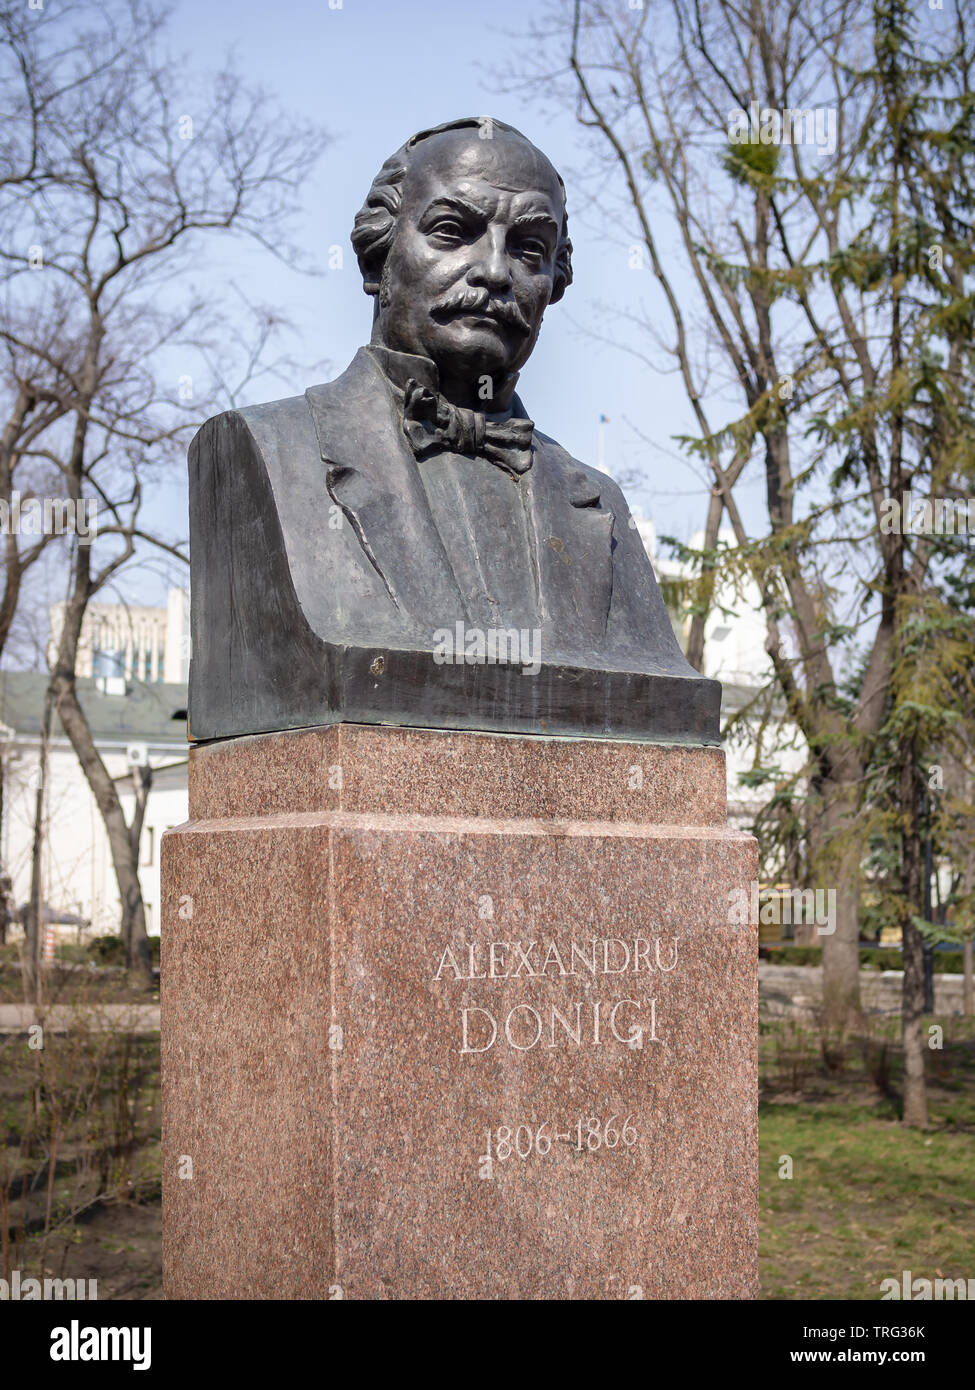 CHISINAU, MOLDOVA-MARCH 21, 2019:  Alexandru Donici bust by Ioan Cheptanaru in the Alley of Classics - Stock Image